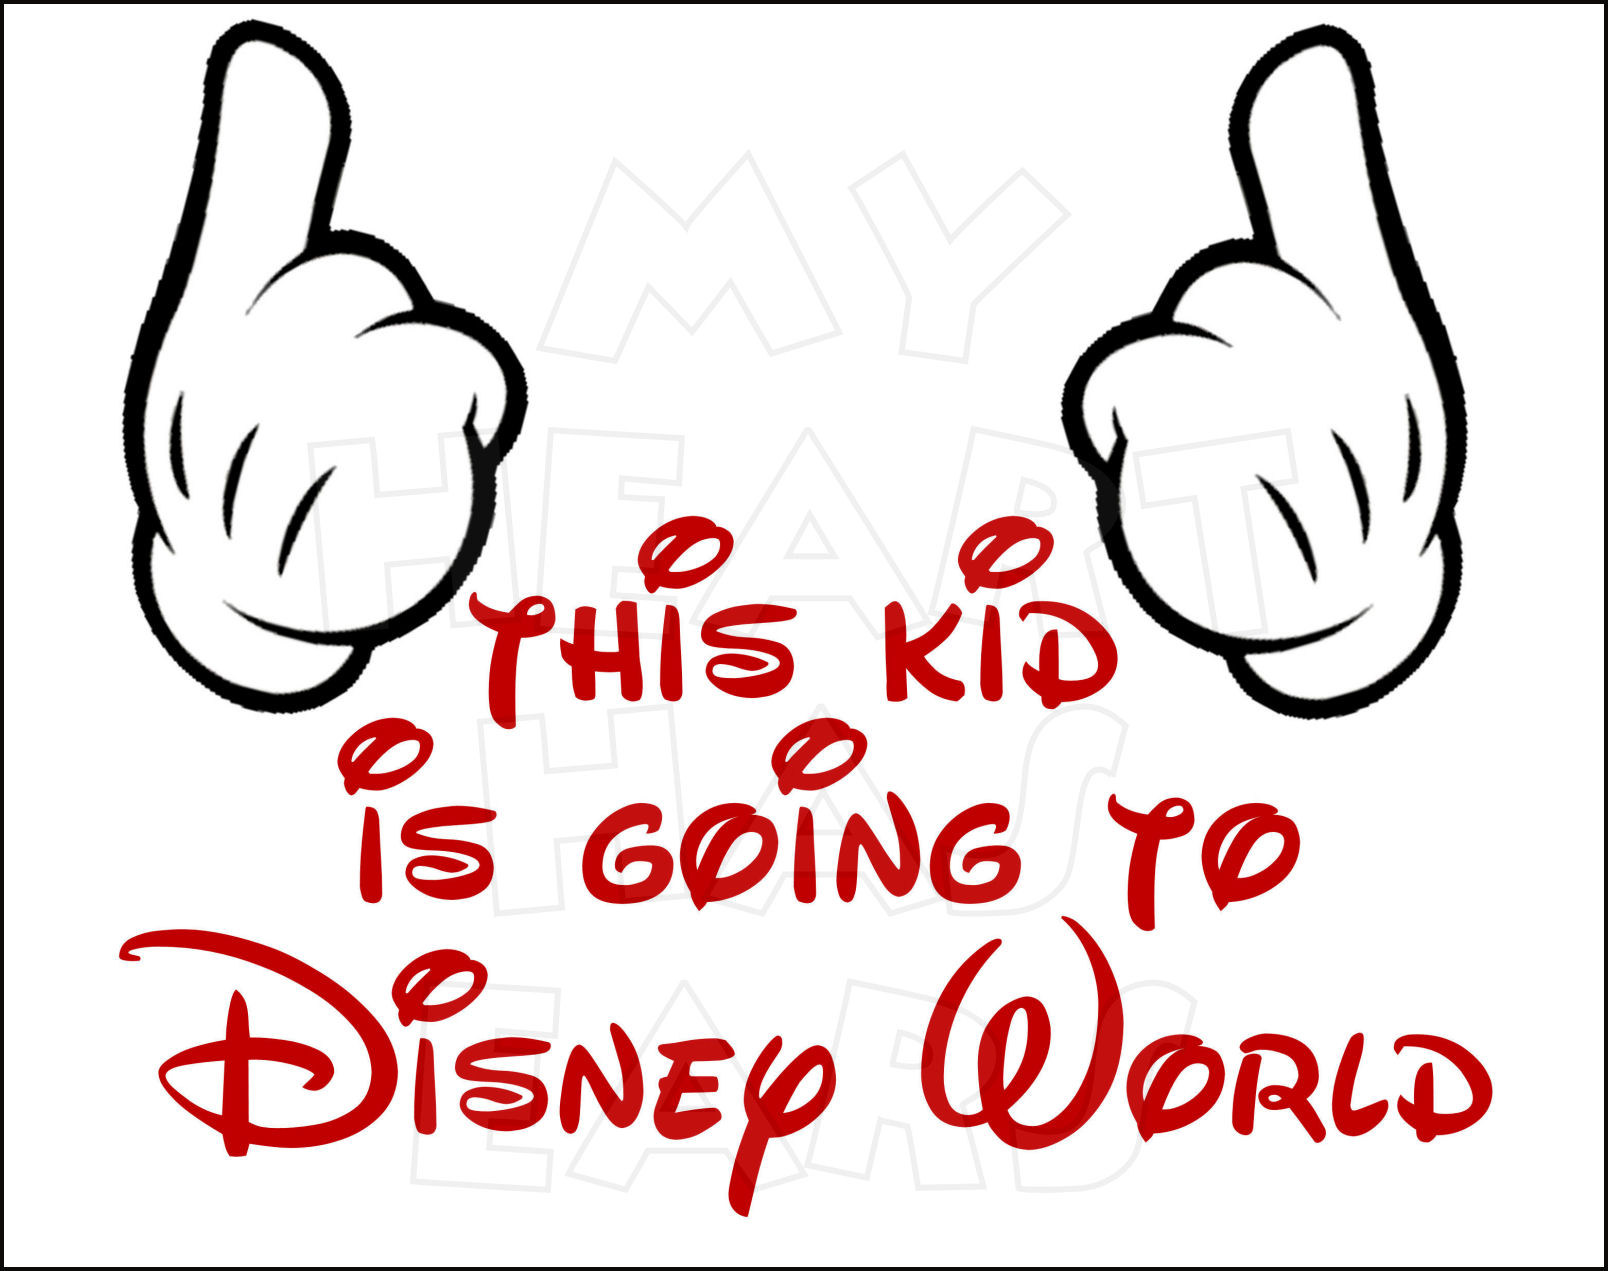 Disneyland clipart florida vacation Pointing ~ kid Ears is